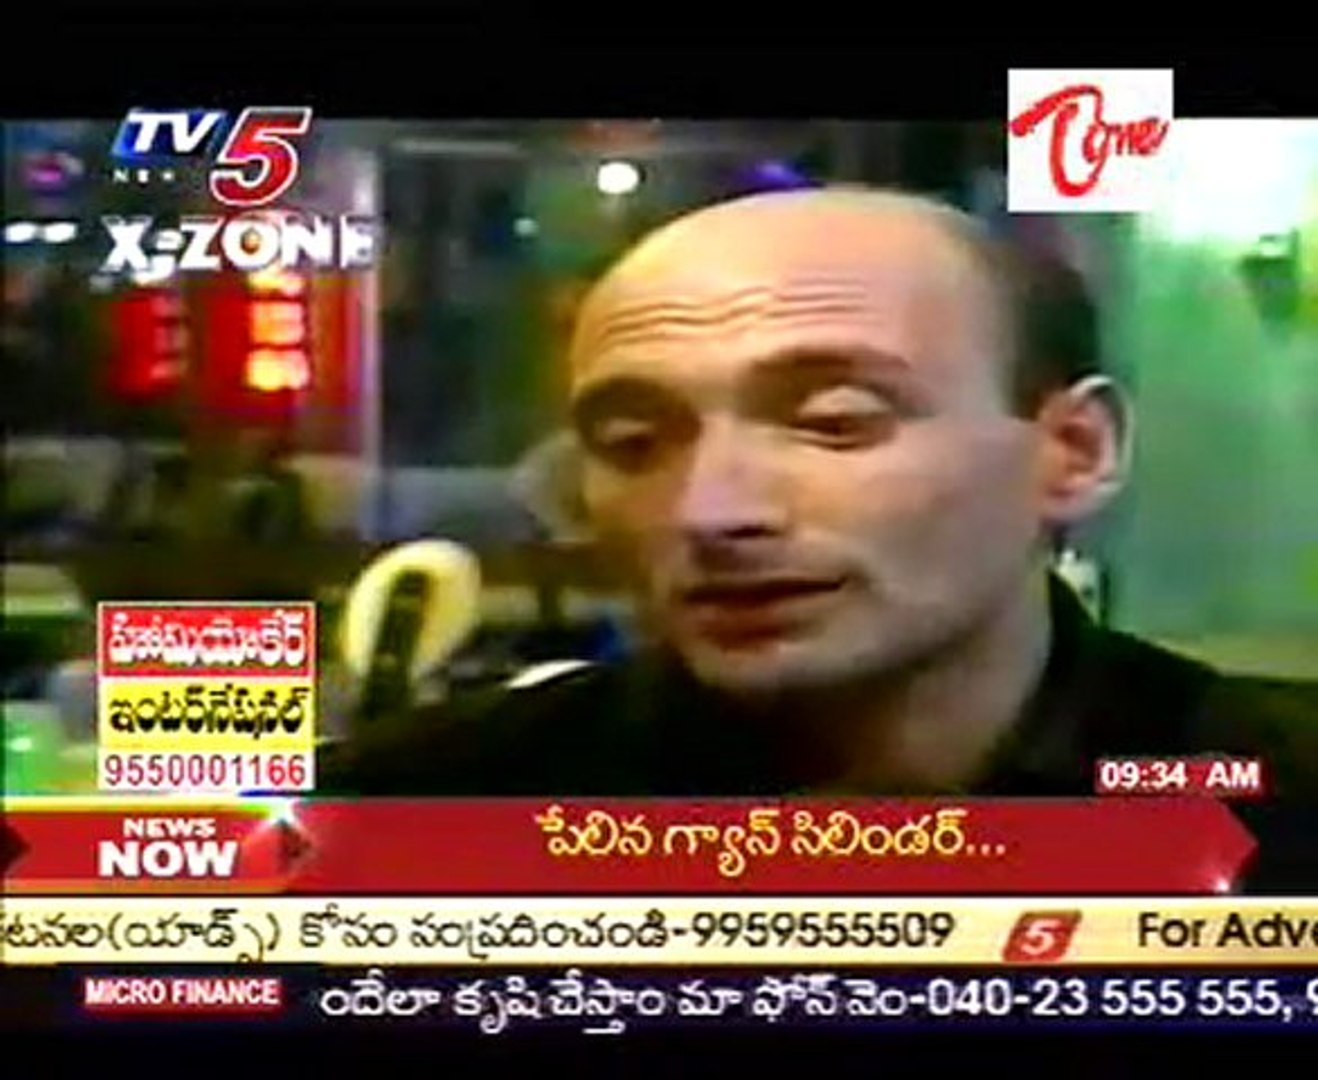 TV5 X - Zone - Sex Business - Women Trapped in Sex Industry - 01